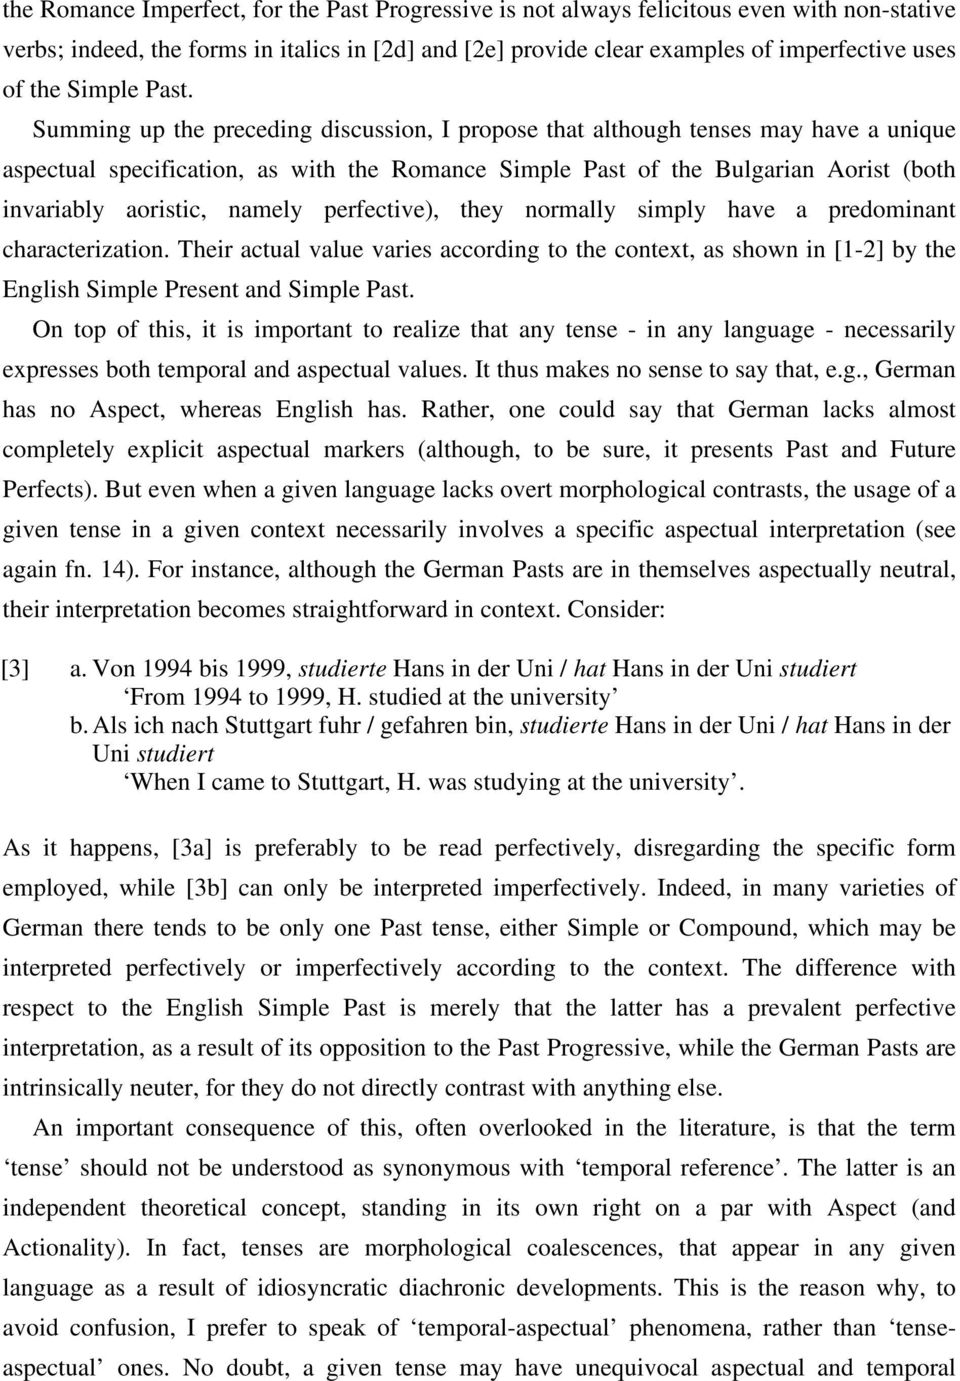 Summing up the preceding discussion, I propose that although tenses may have a unique aspectual specification, as with the Romance Simple Past of the Bulgarian Aorist (both invariably aoristic,